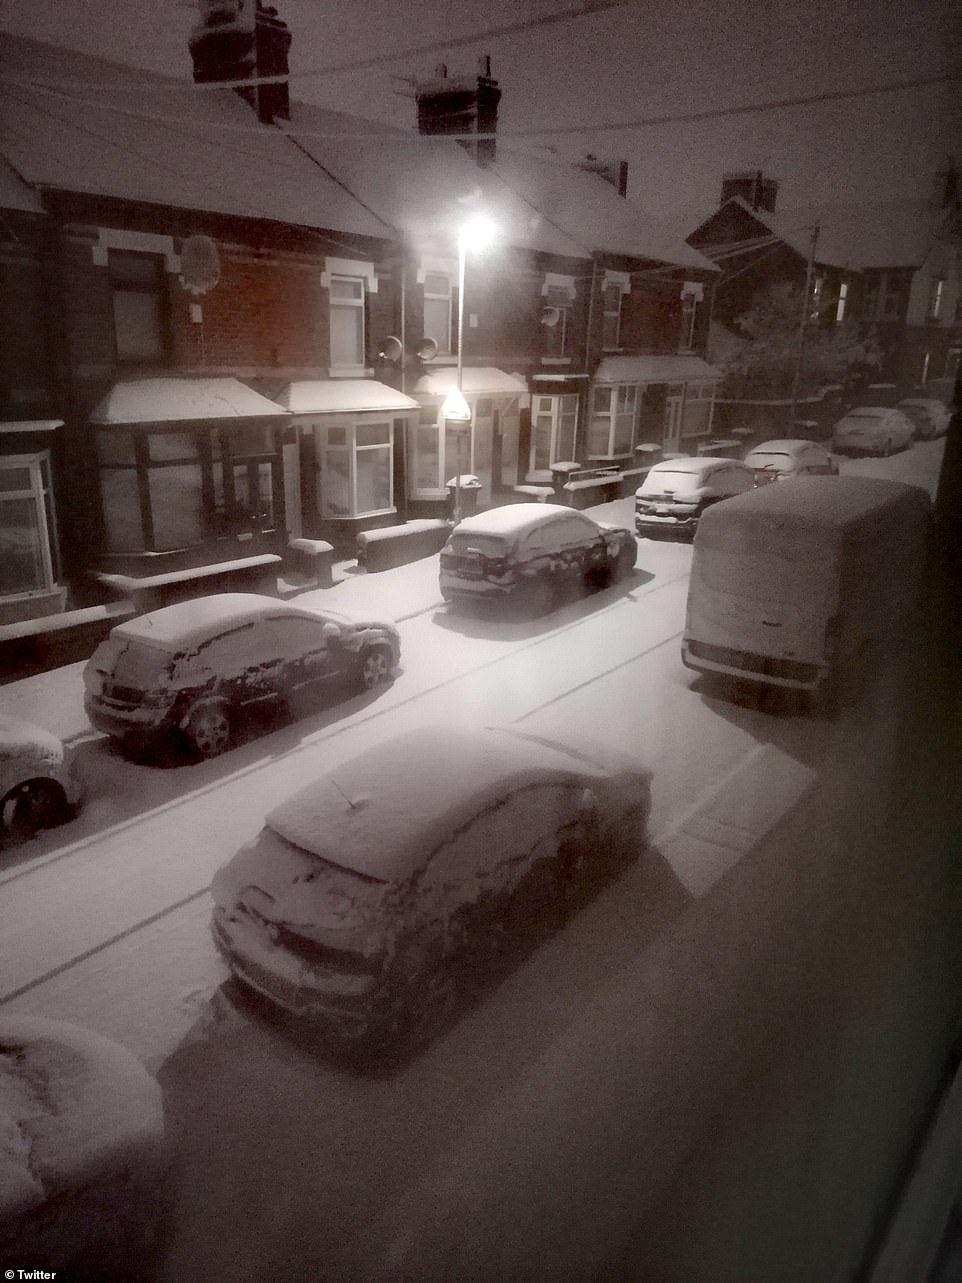 Pictures show snow in Stoke-on-Trent in the Midlands today, as experts predict more snow for later on, including in parts of the south